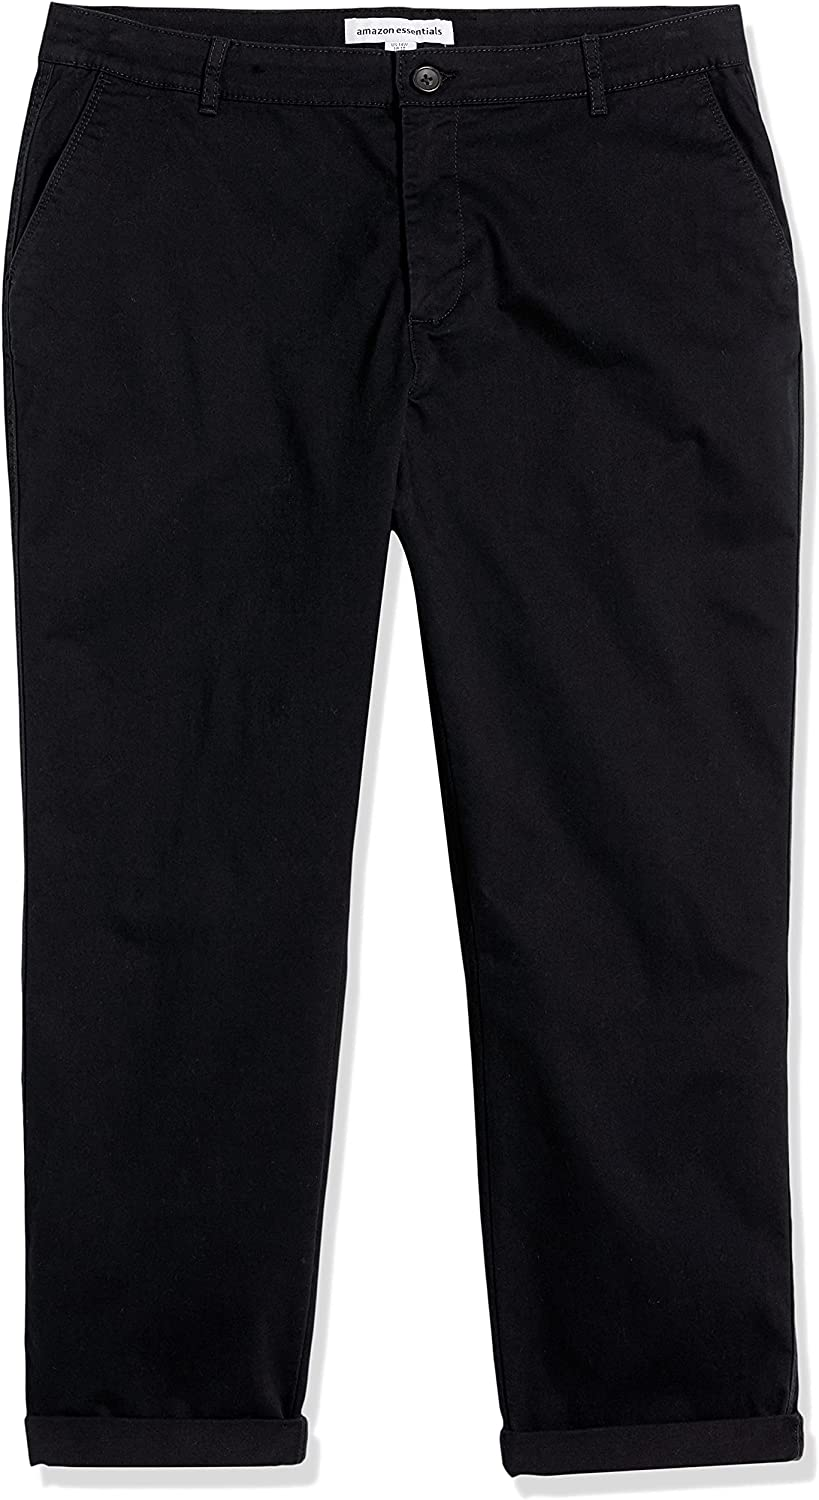 Amazon Essentials Women's Cropped Girlfriend Chino Pant (Available in Plus Size)